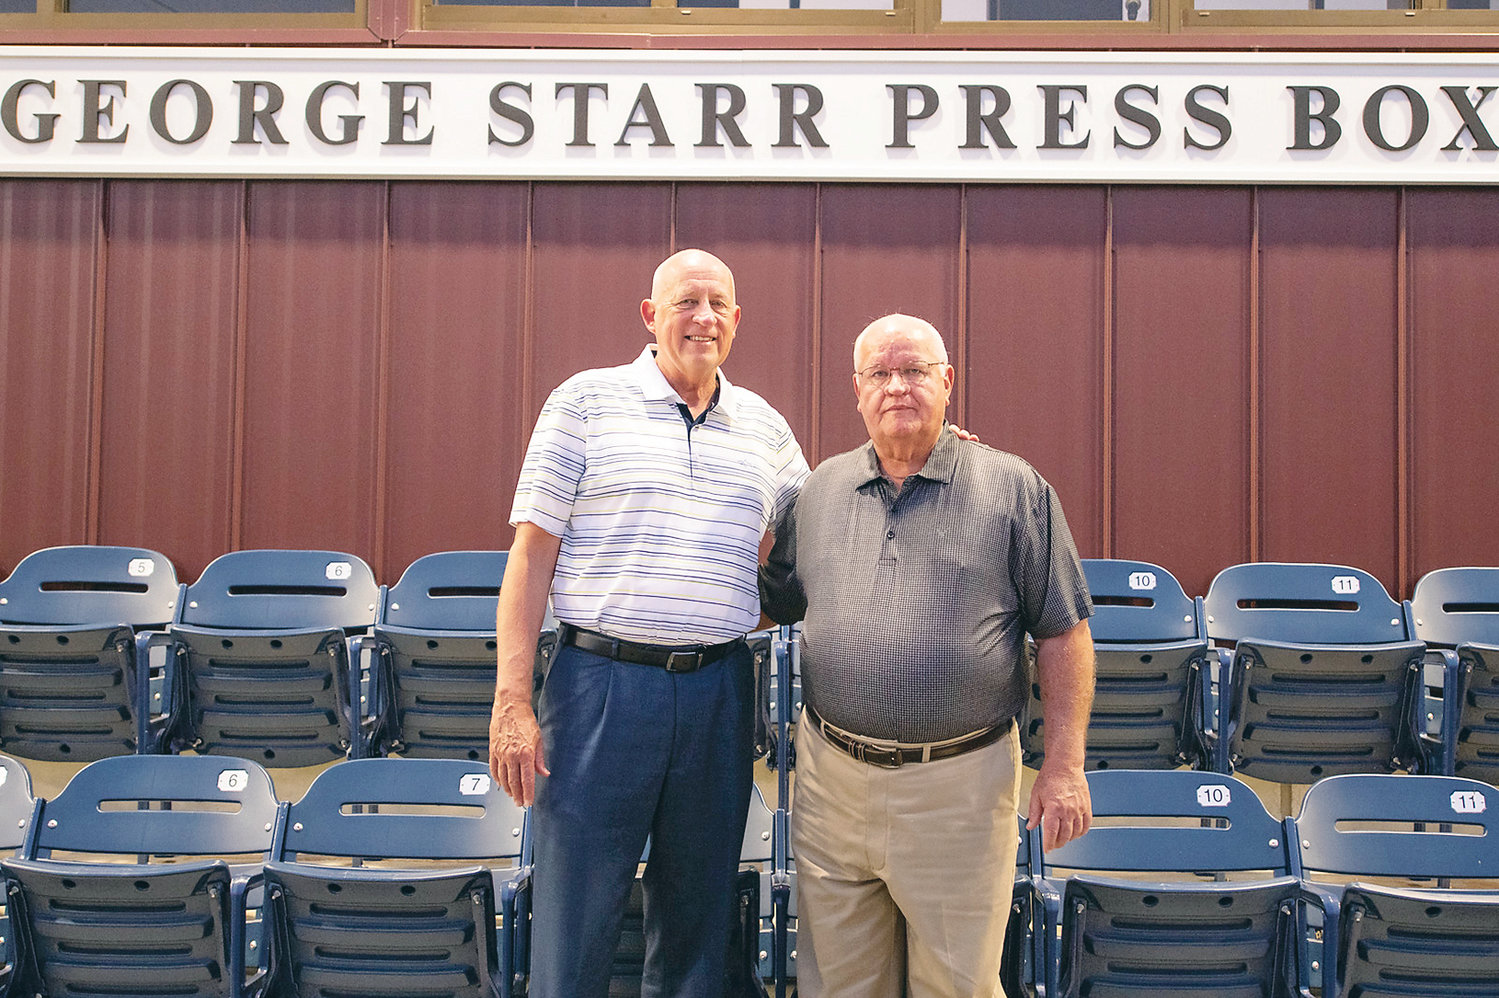 LEE ATHLETICS DIRECTOR Larry Carpenter, left, and the Voice of the Flames, George Starr, were honored at Olympic Stadium last week.